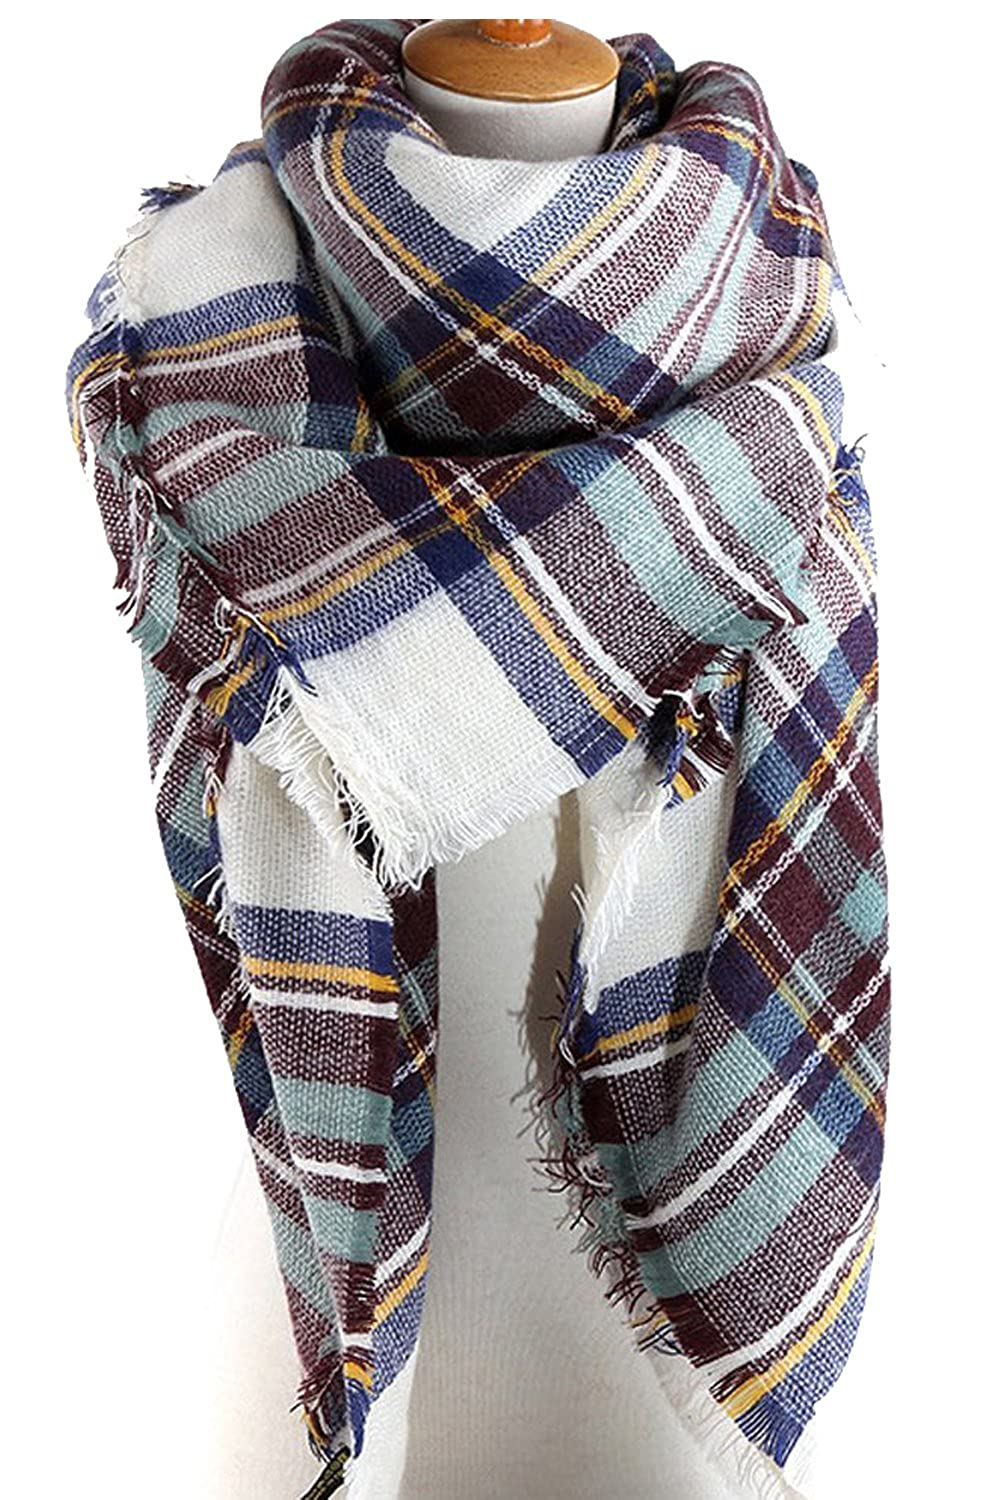 71f6c75997 Women s Winter Soft Plaid Tartan Checked Scarf Large Blanket Wrap Shawl at  Amazon Women s Clothing store